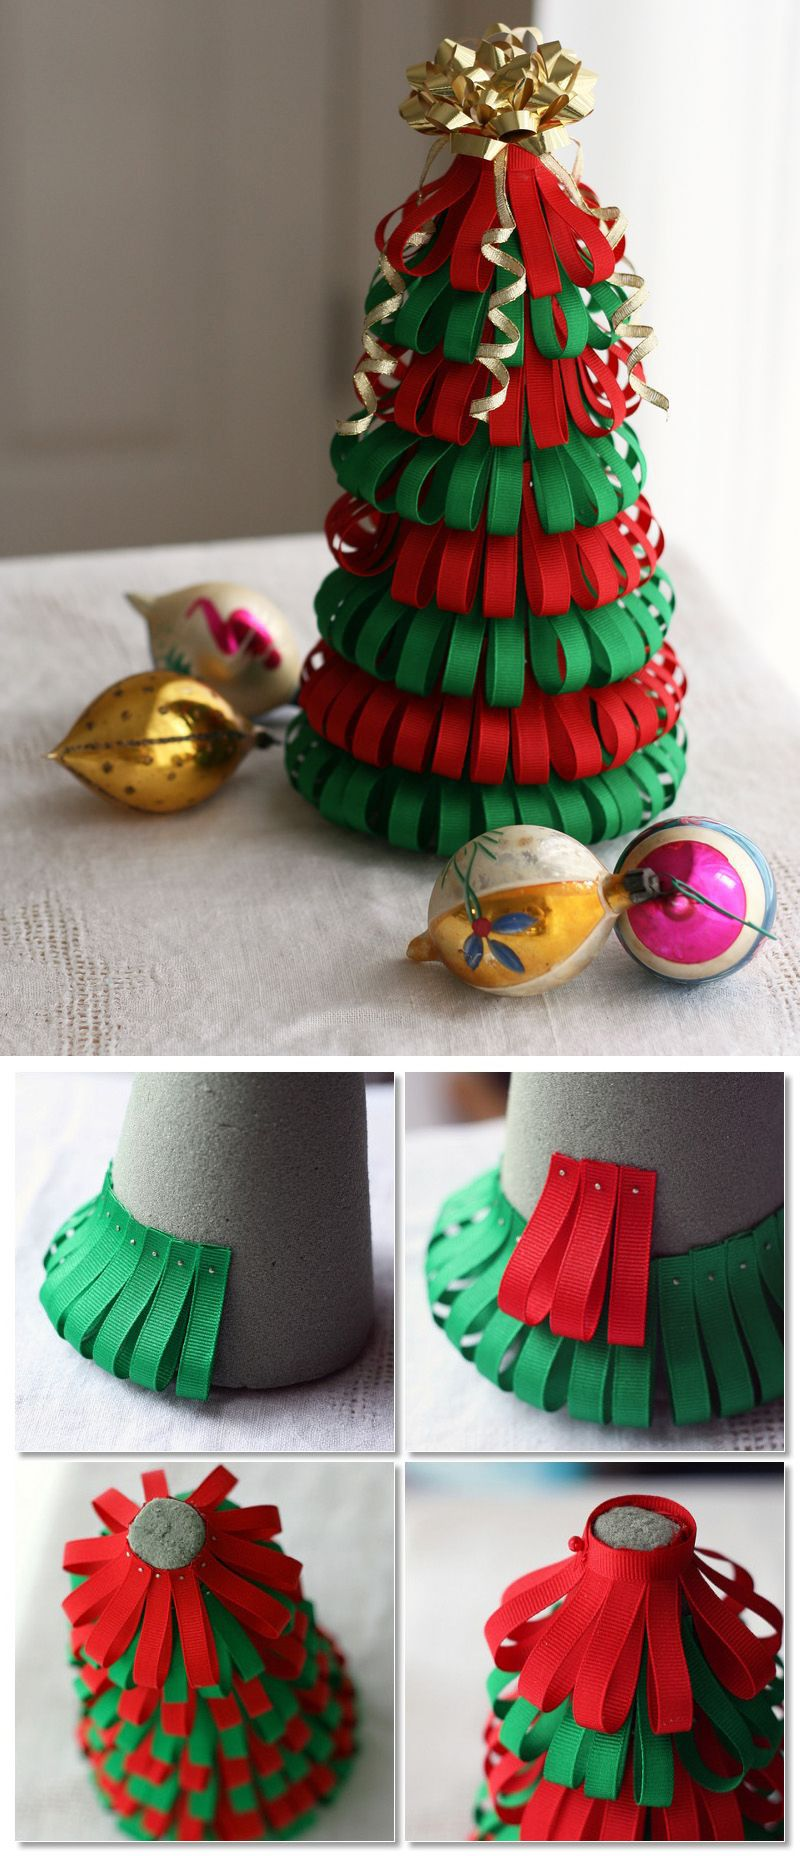 How To Make A Ribbon Christmas Tree Christmas Crafts Diy Christmas Crafts Diy Christmas Tree